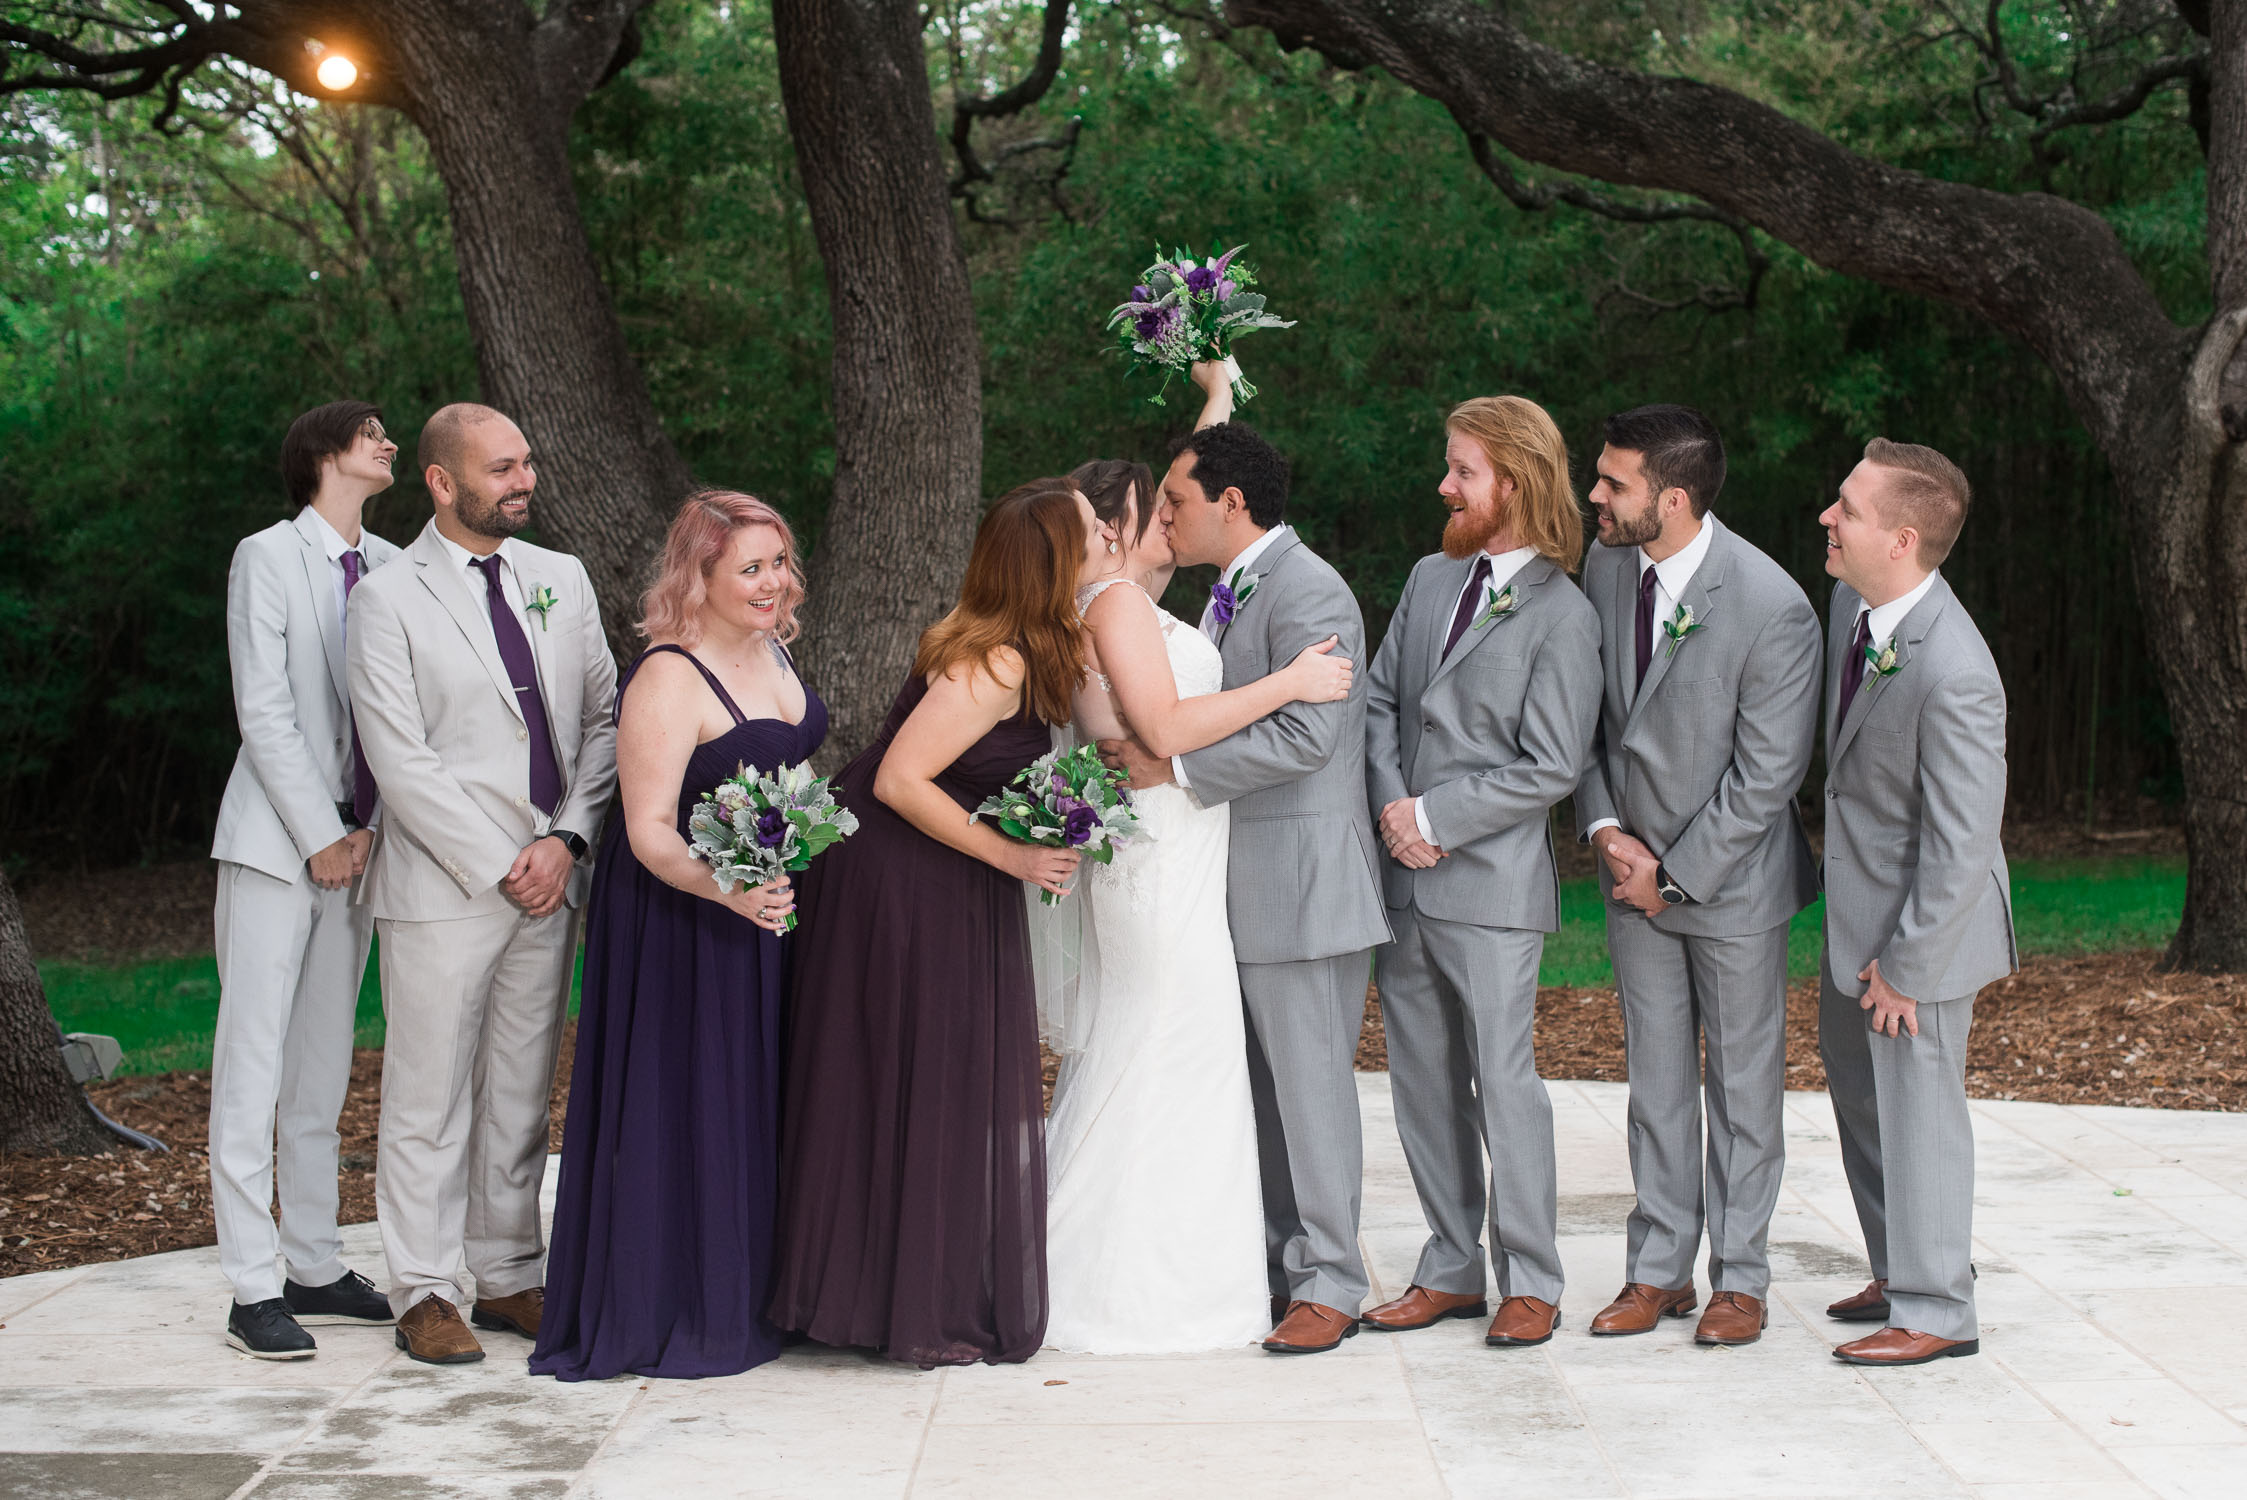 Alex and Austin Wedding Photography at Mercury Hall in Texas-103.jpg